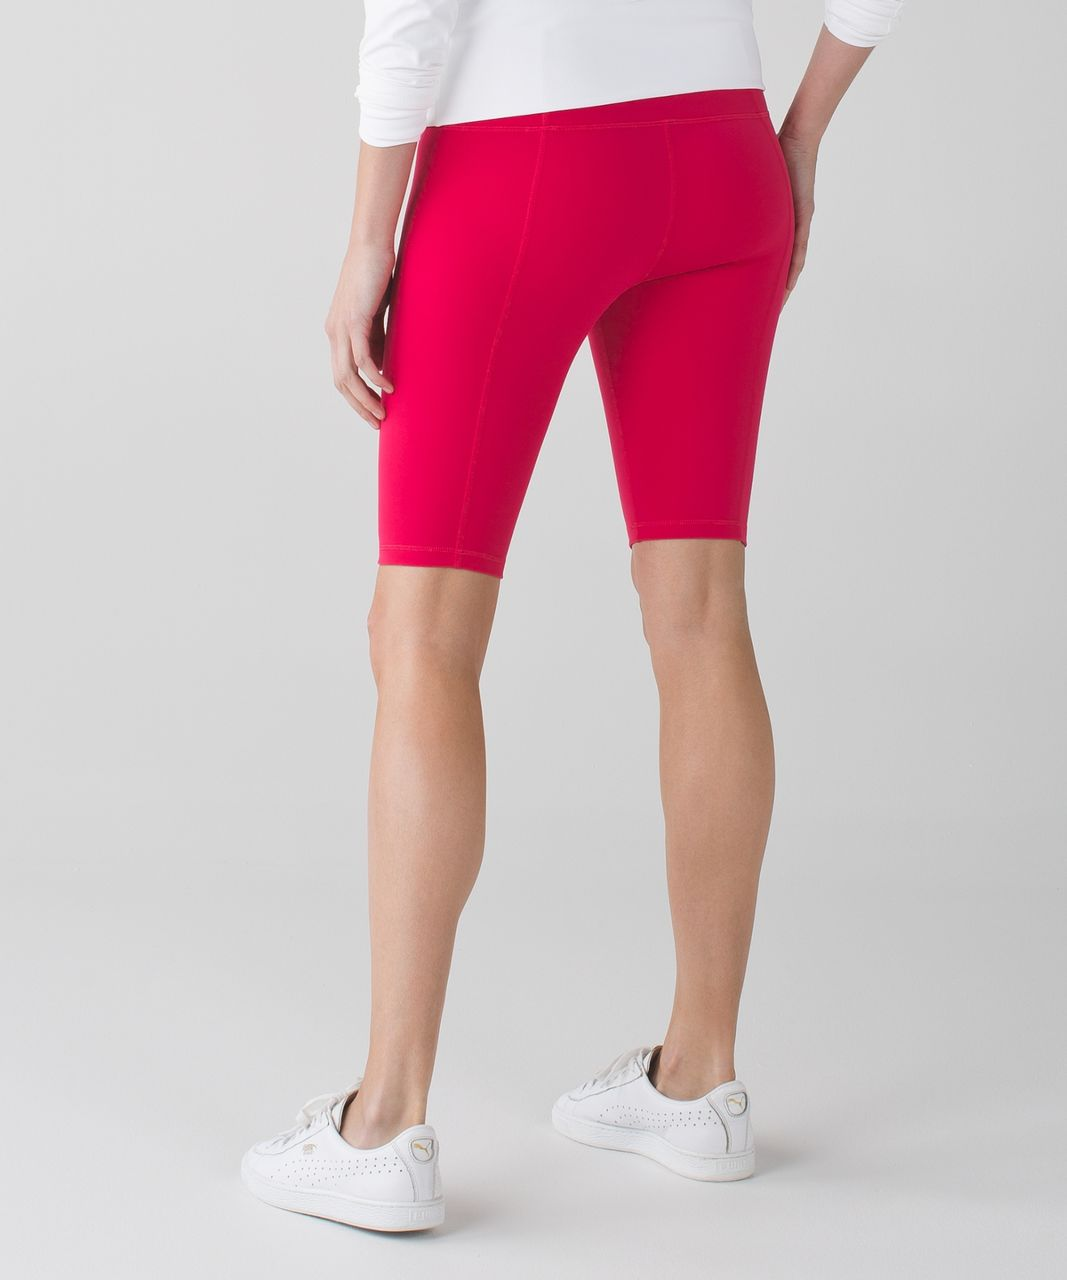 Lululemon Groove Short II (Roll Down - Tall) *Full-On Luon - Boom Juice